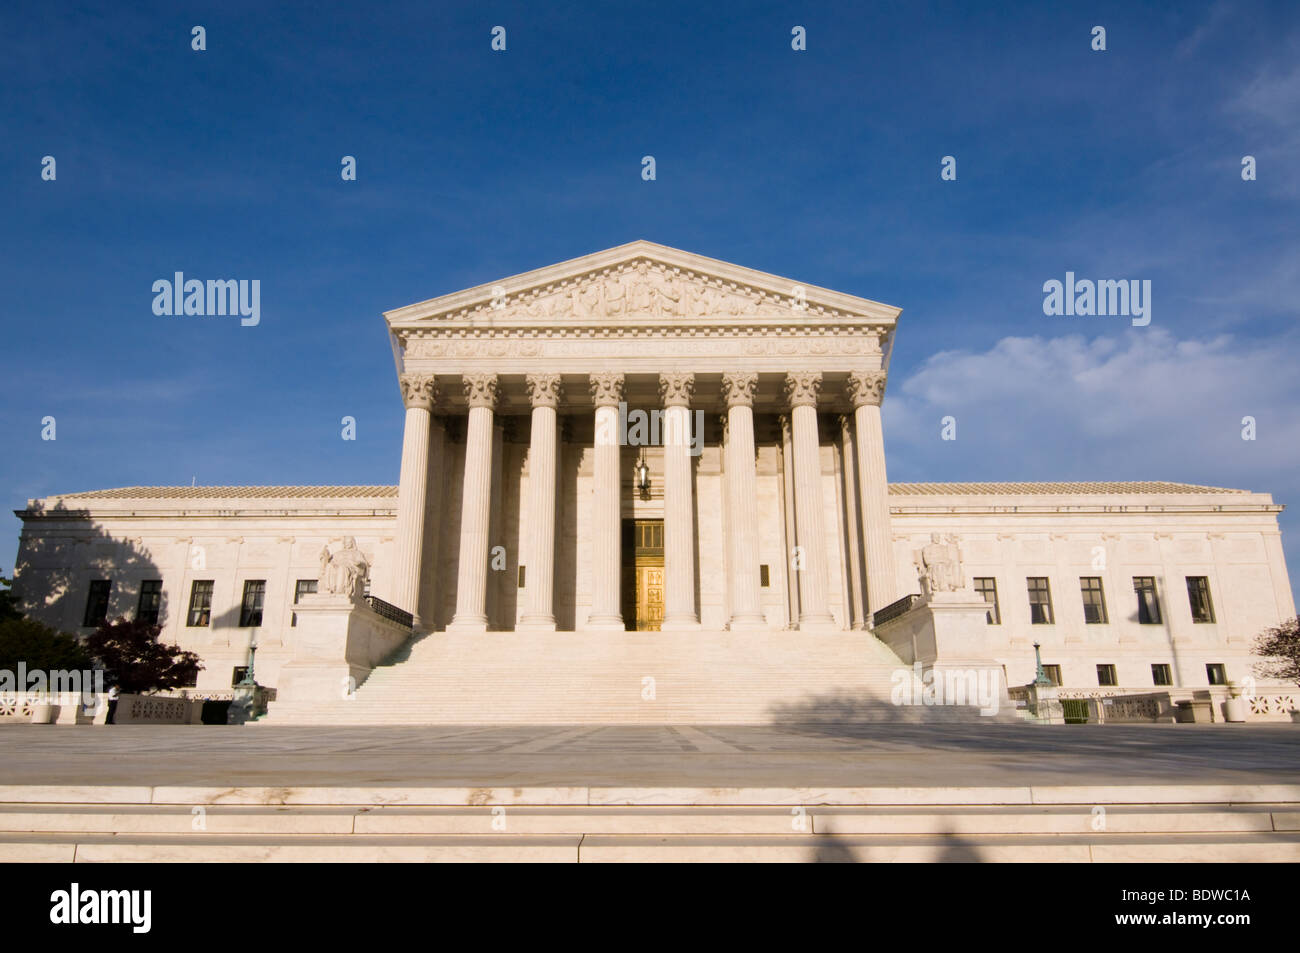 The steps of the United States Supreme Court building bathed in late afternoon sunlight. - Stock Image